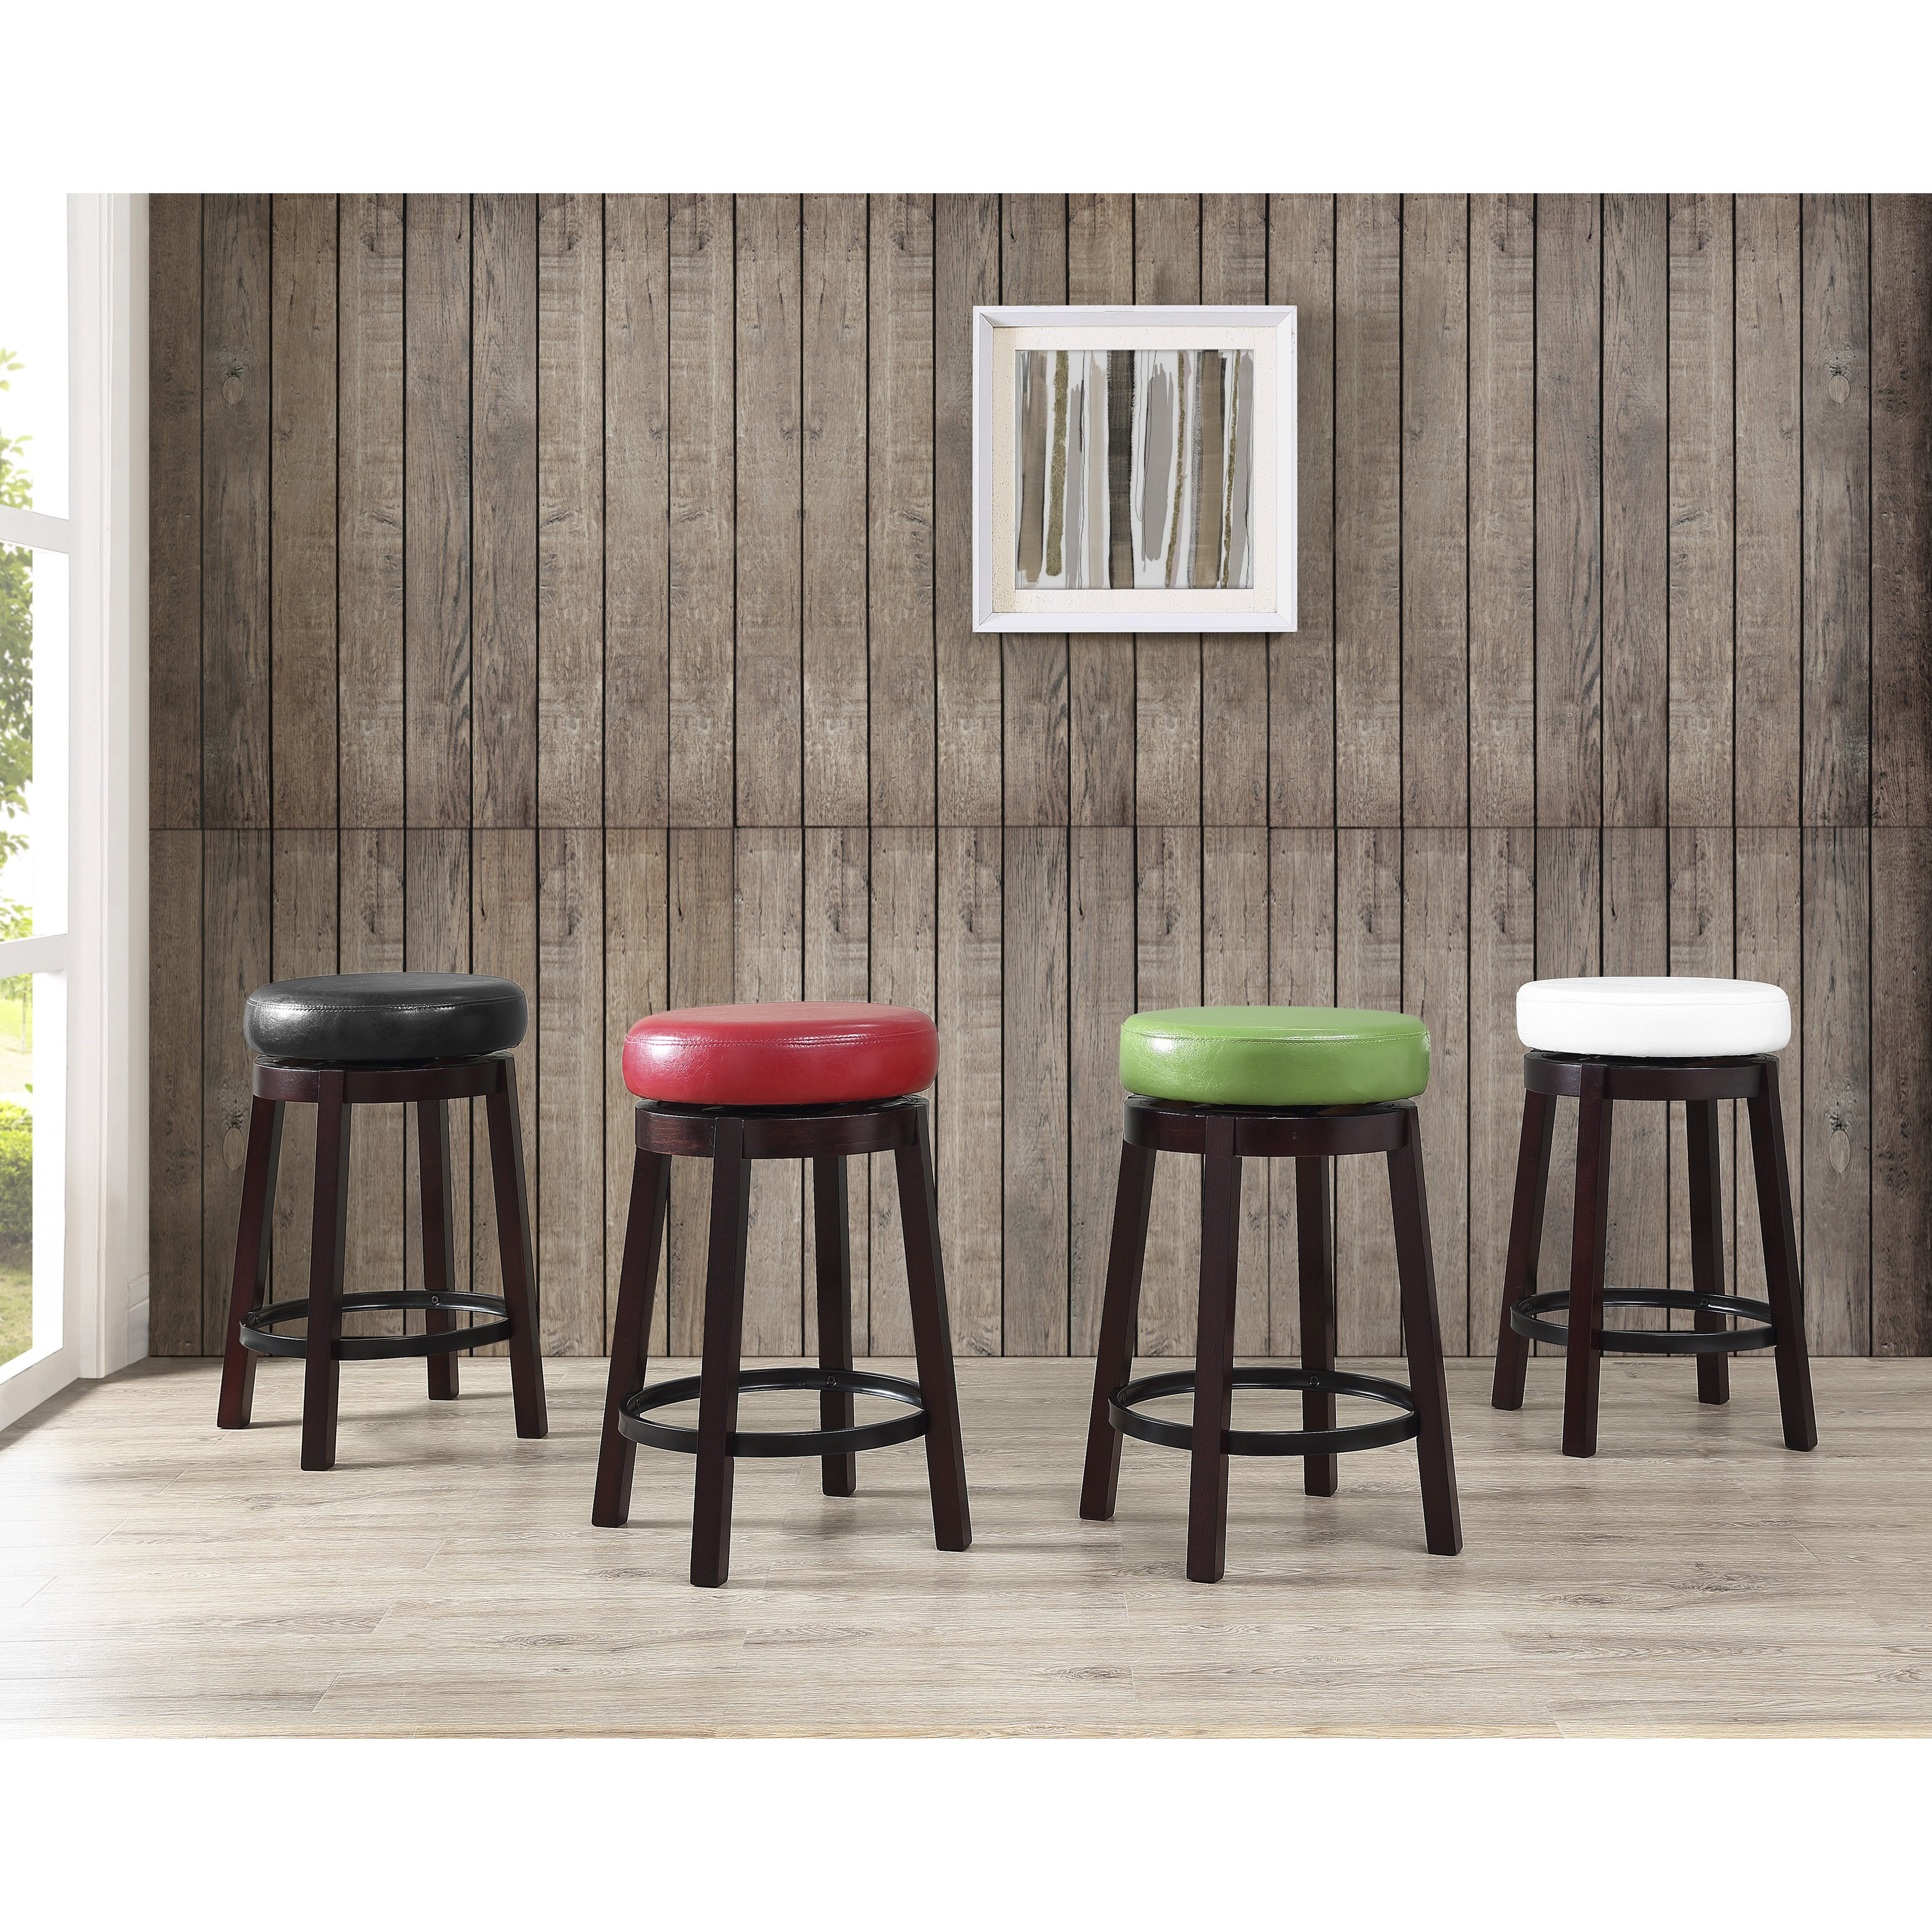 Swivel Counter Height Bar Stool With Leather Seat And Metal Foot Rest Set Of 2 On Free Shipping Today 20255105